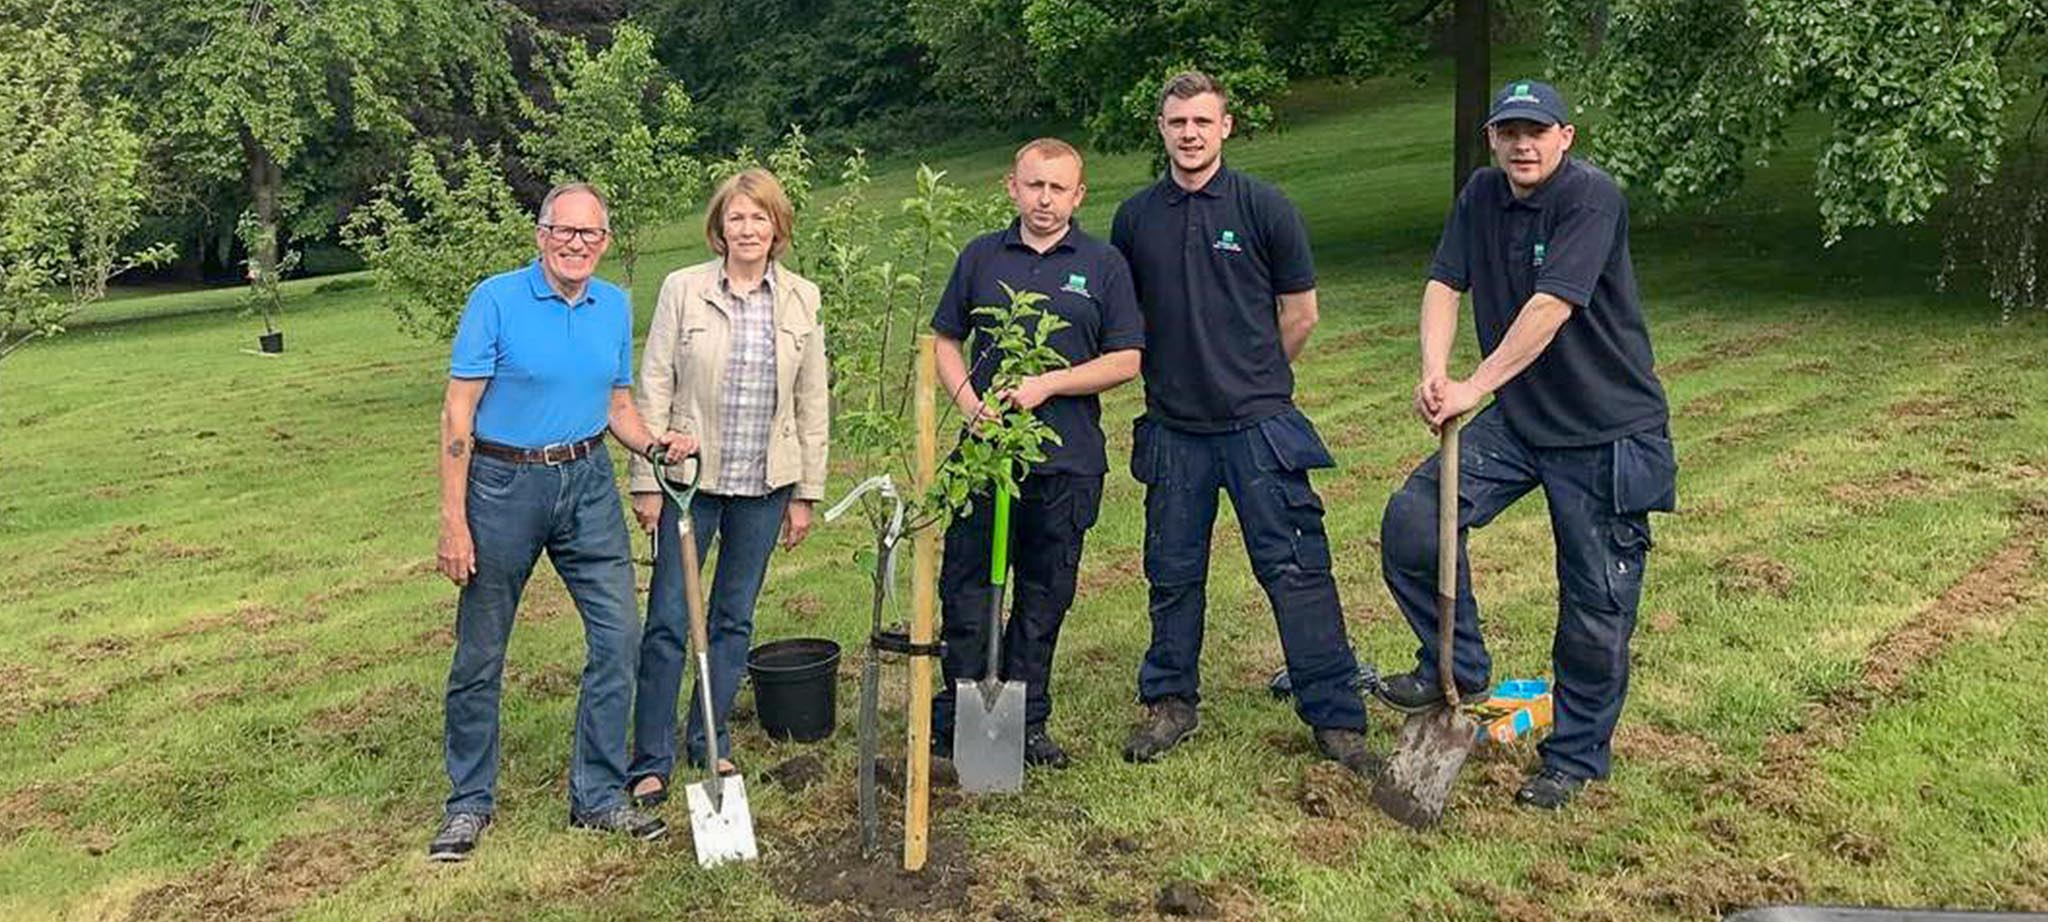 Bott show support to Friends of Pittencrieff Park